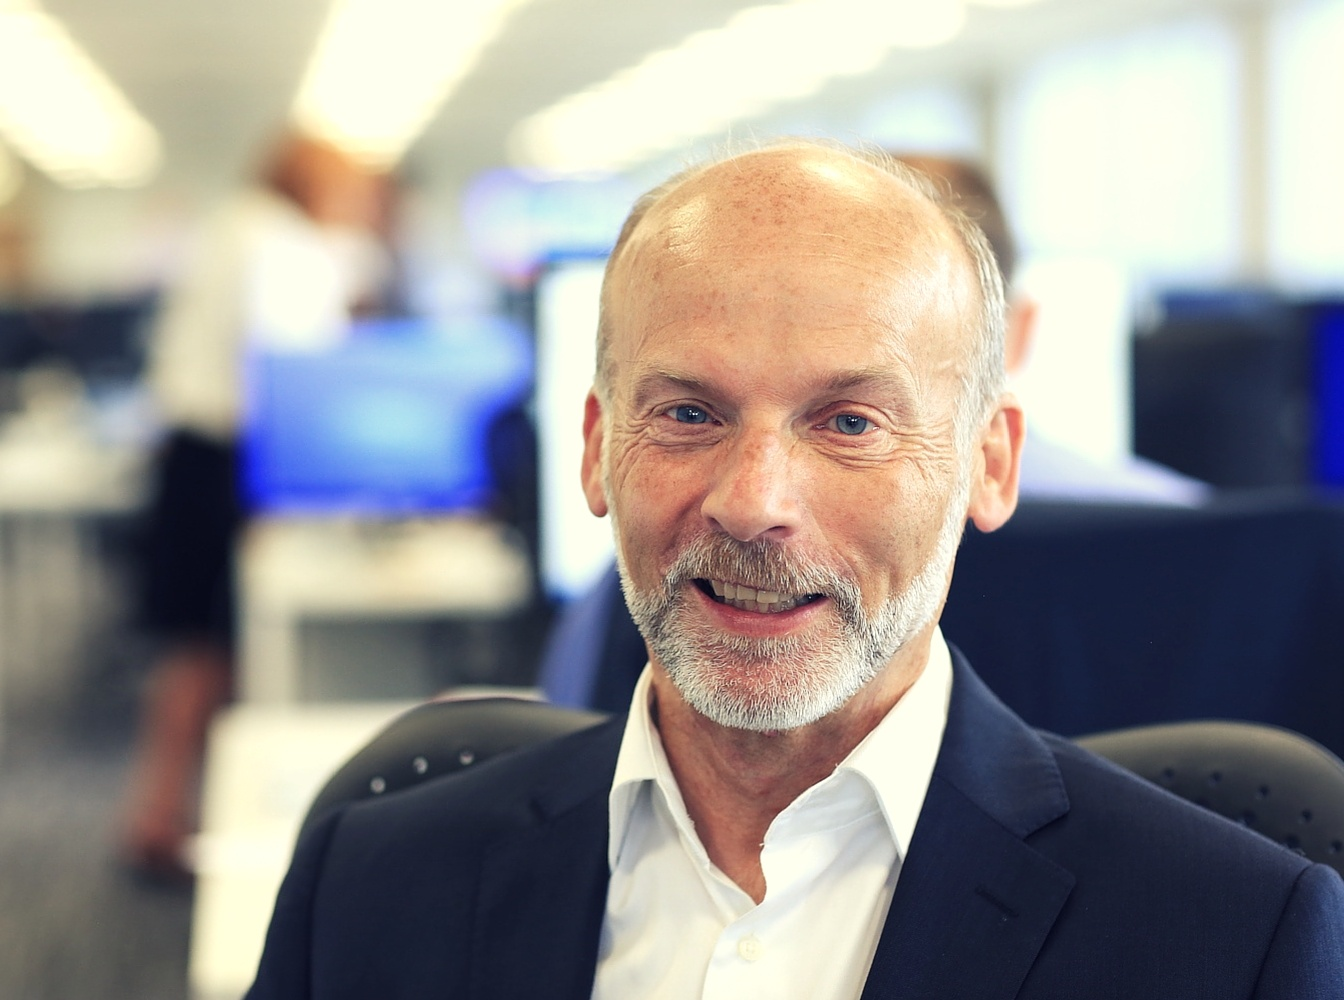 Welcome to our new Non-Executive Chairman, John Caines